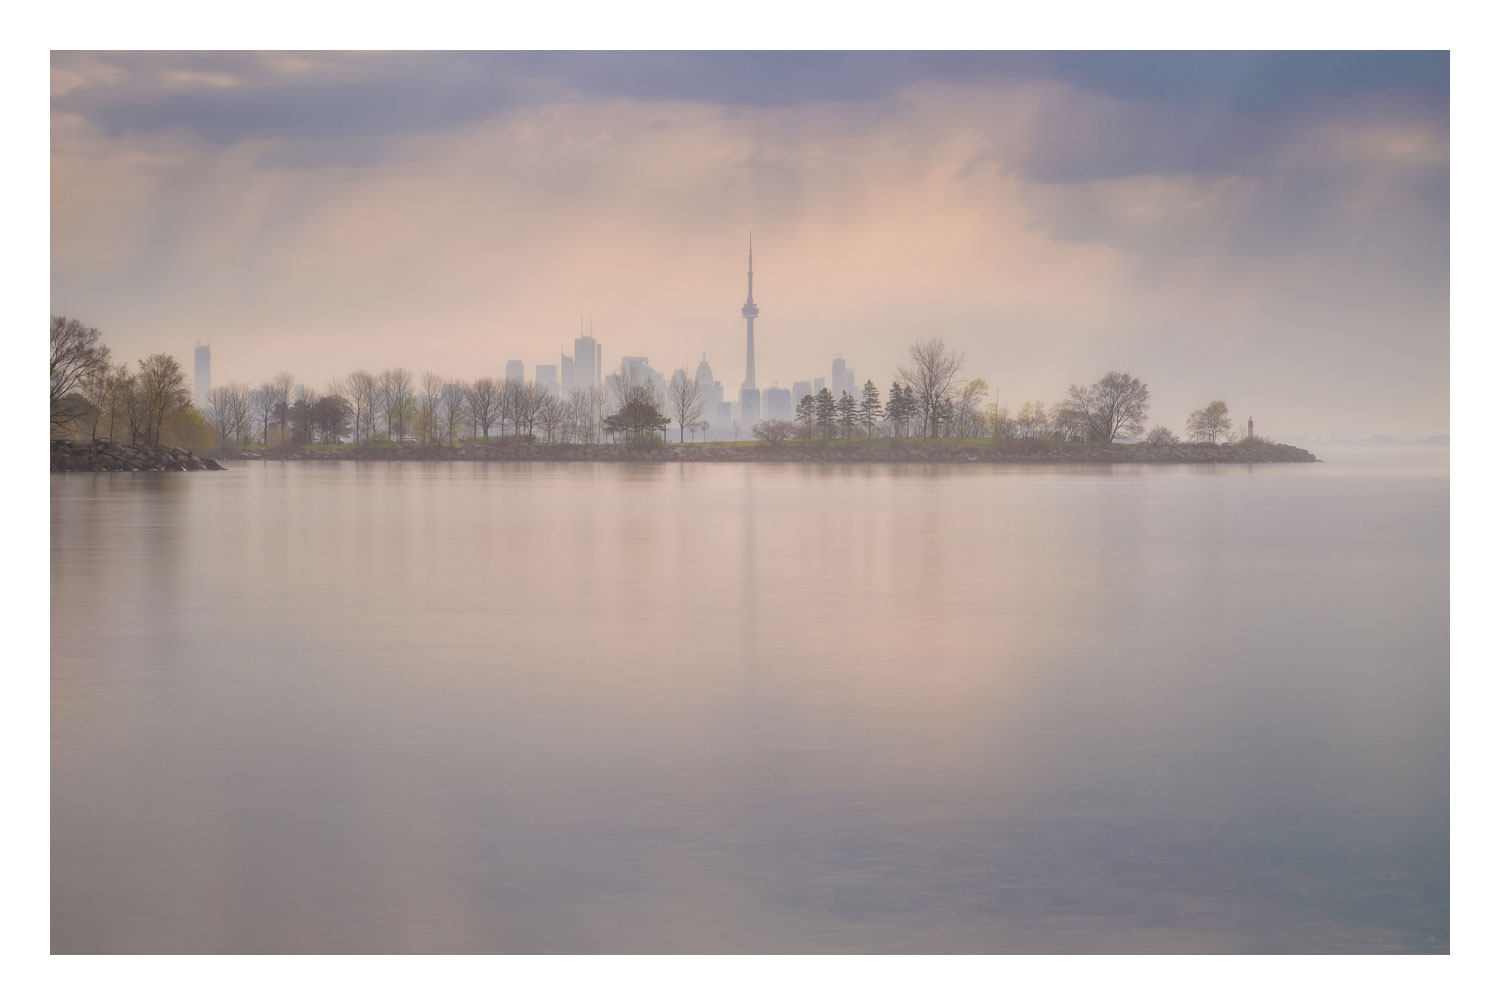 85mm can be an excellent focal length for landscapes – 7.0 sec at F/16 (chosen to slow shutter speed down)